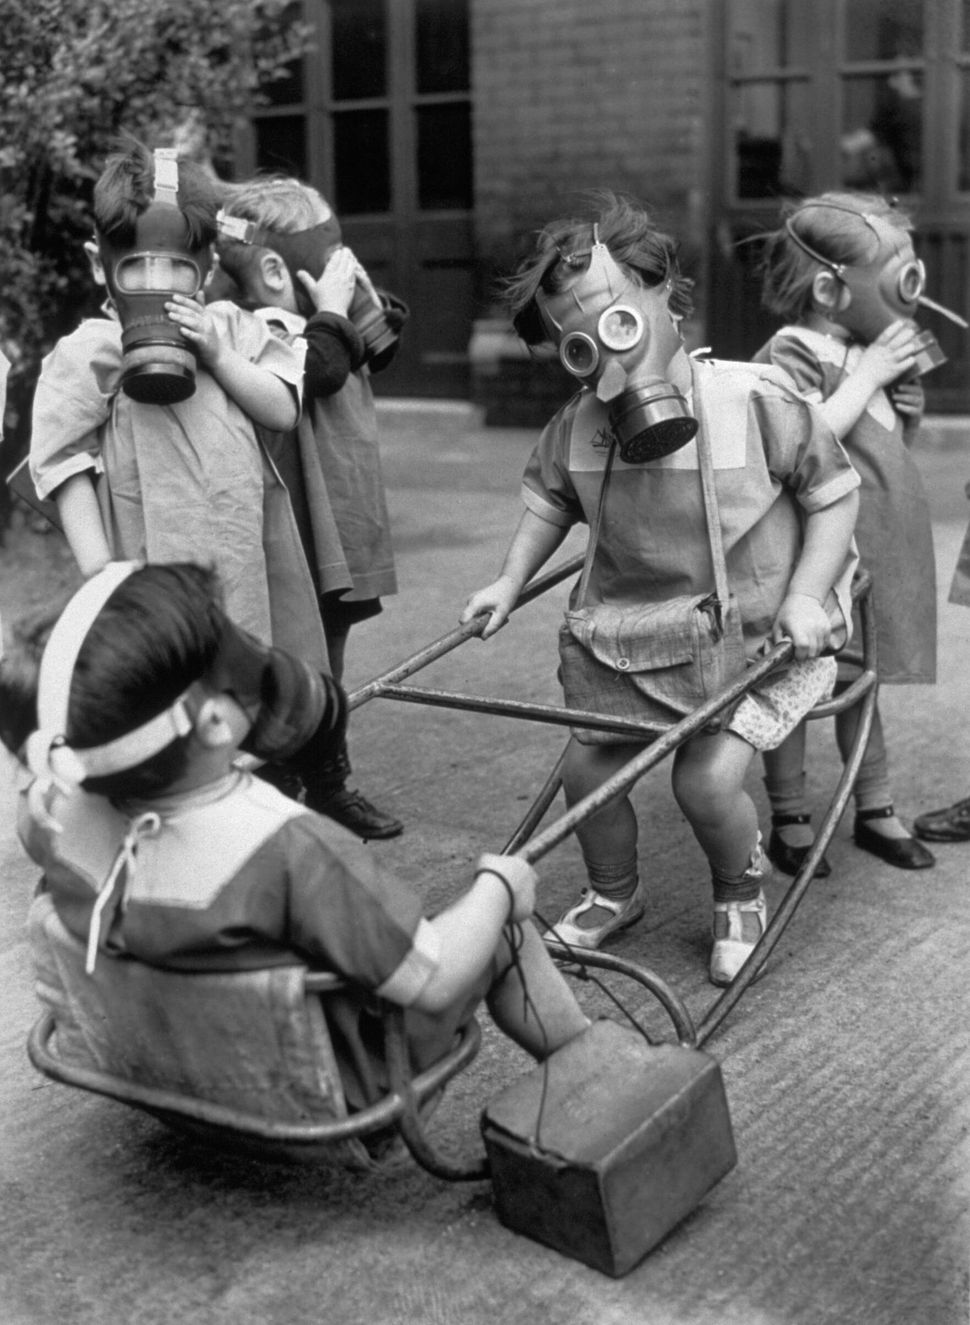 Small children in a playground wearing their gas masks around 1940.